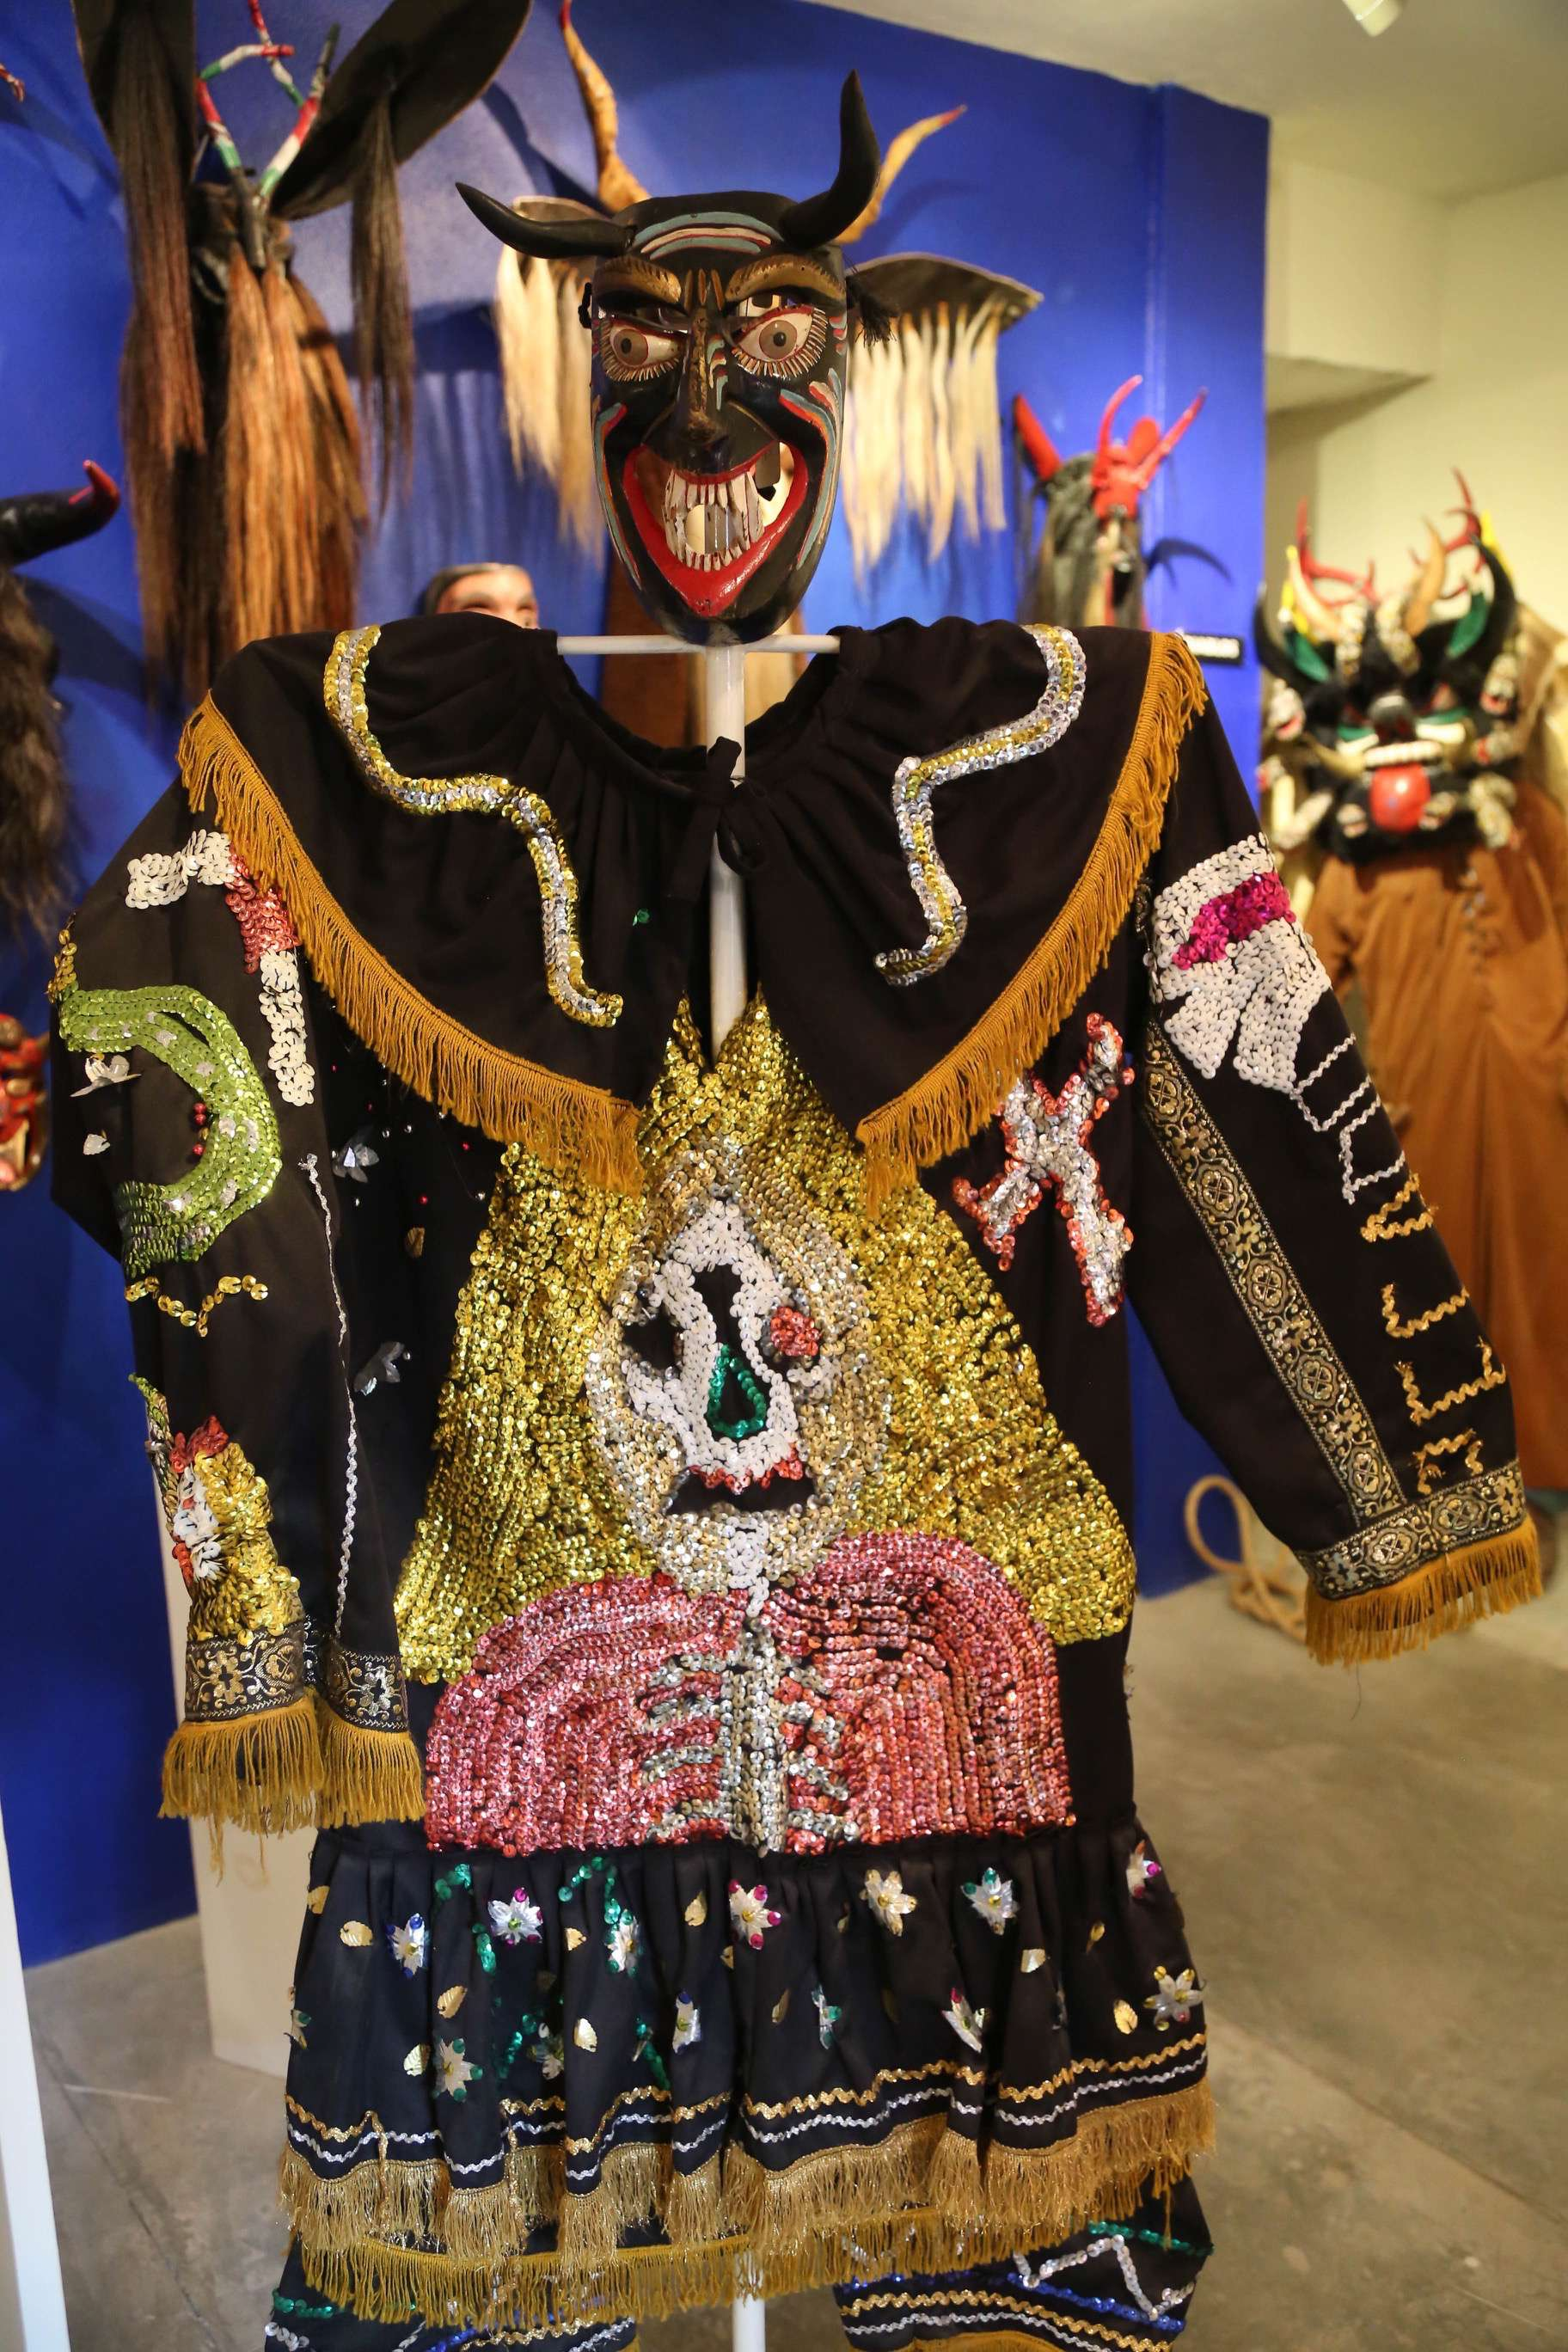 Using more modern materials, like the sequins in this costume create a vibrant look not possible a century ago.